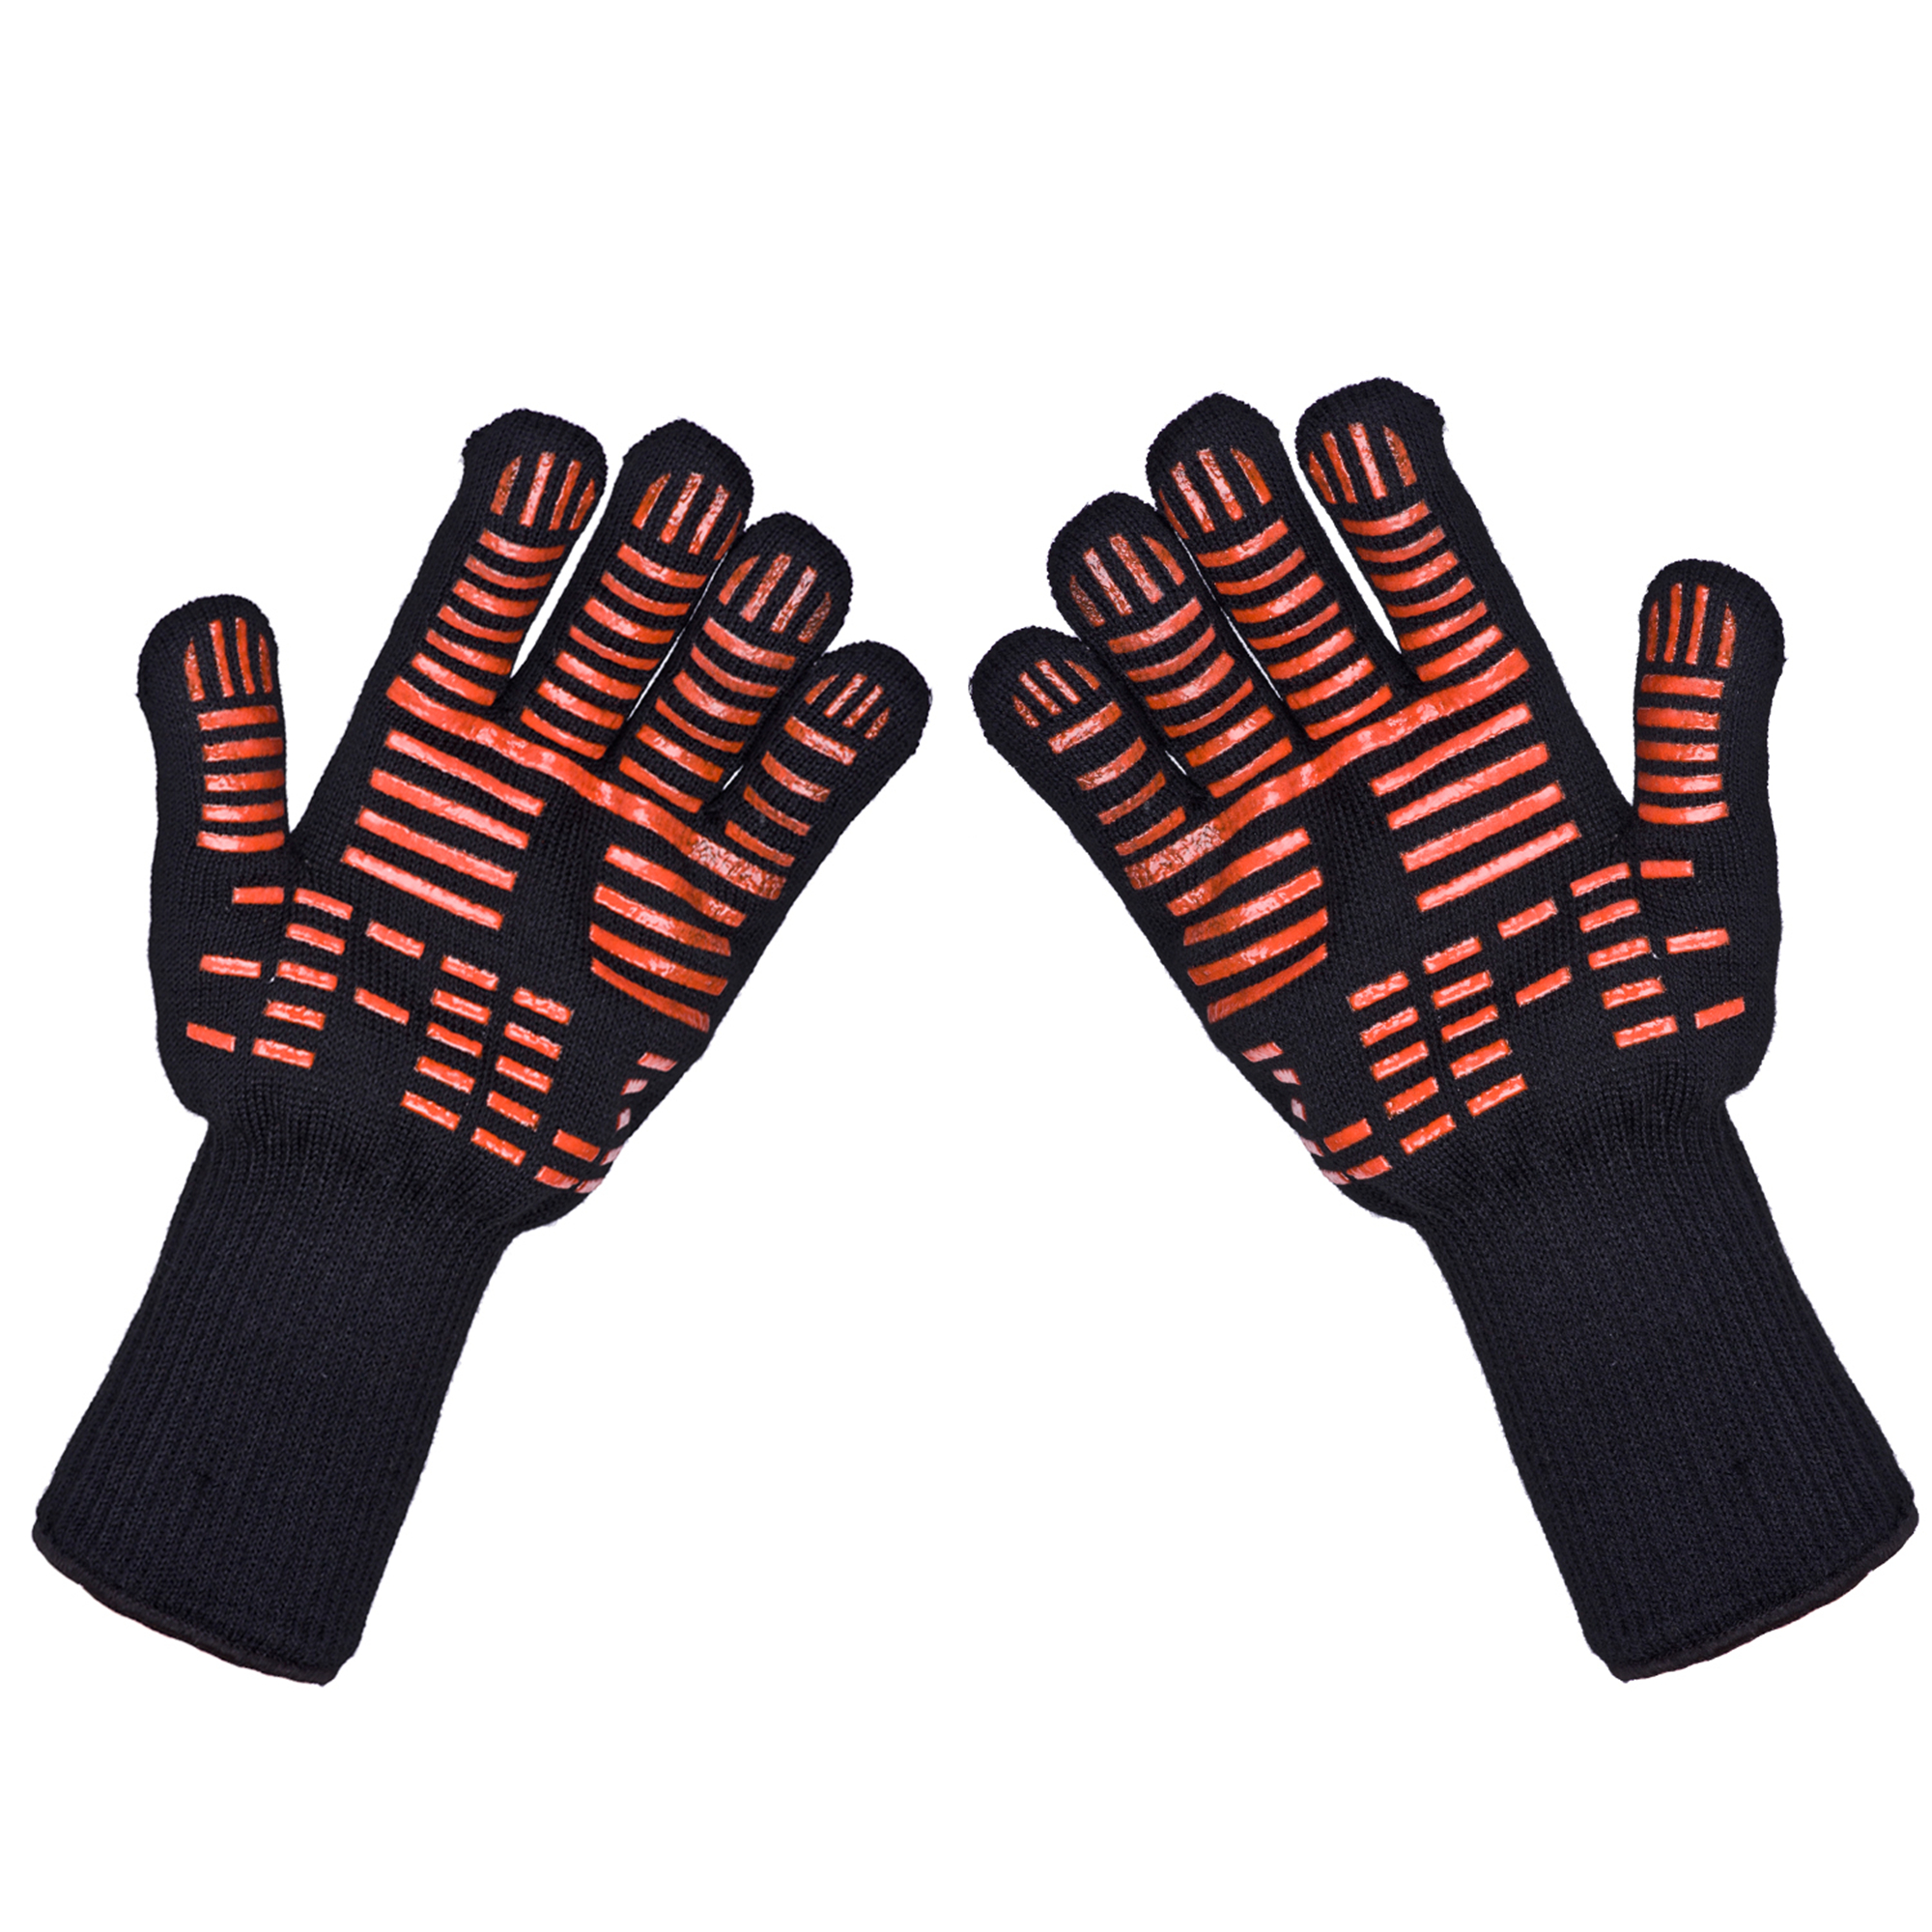 TTLIFE Hot Oven Mitts Gloves BBQ Grilling Cooking Gloves - 932F Extreme Heat Resistant Gloves Long For Extra Forearm Protection